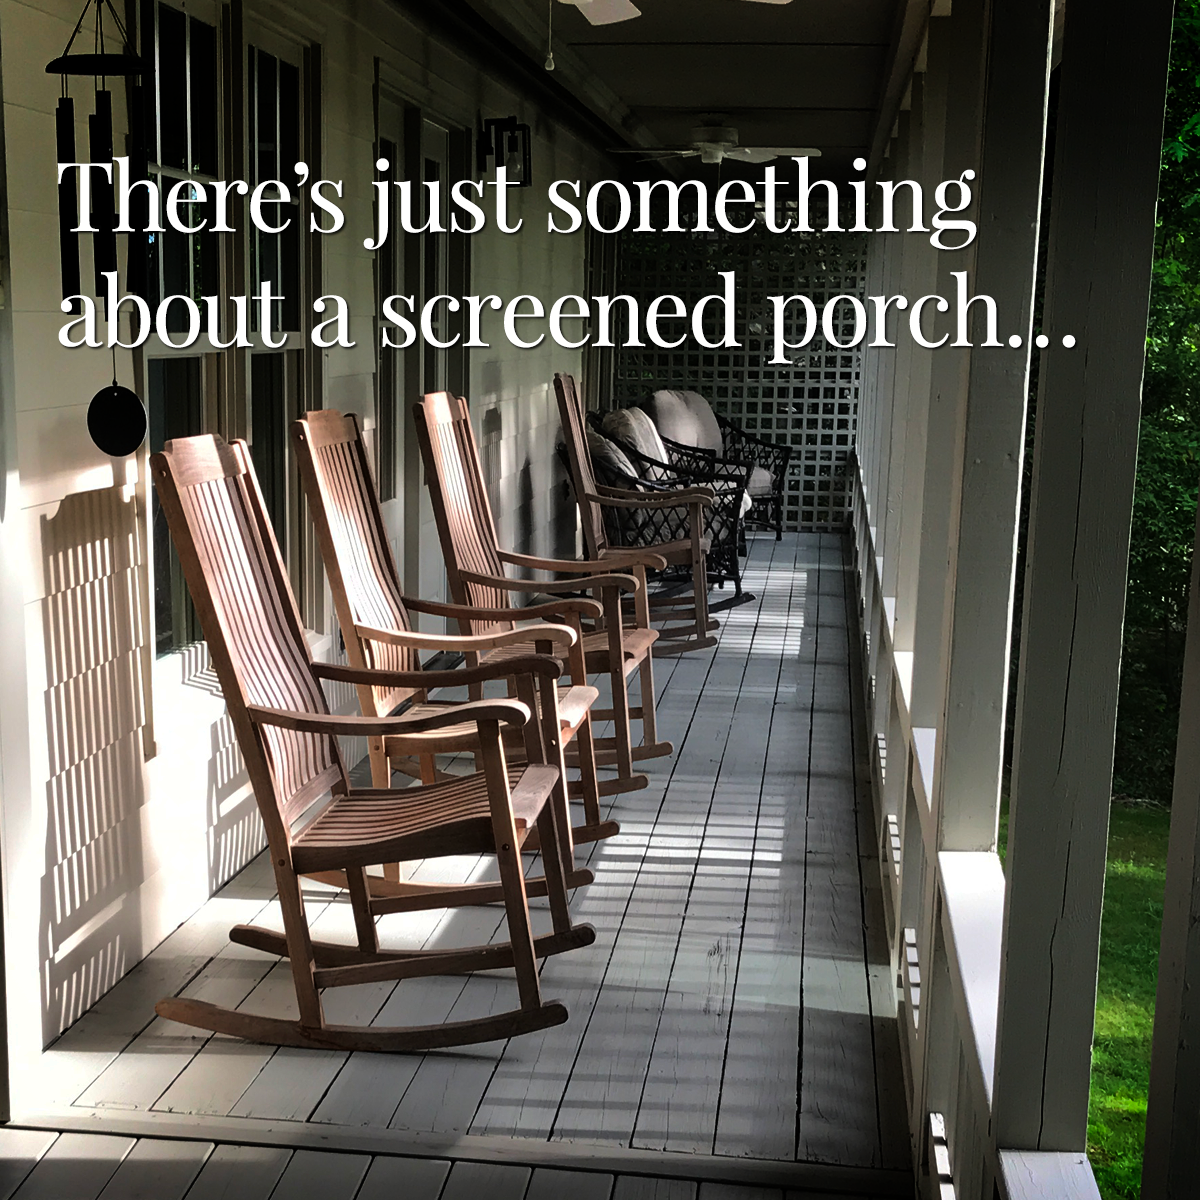 My Favorite Part of Home - A Screened Porch